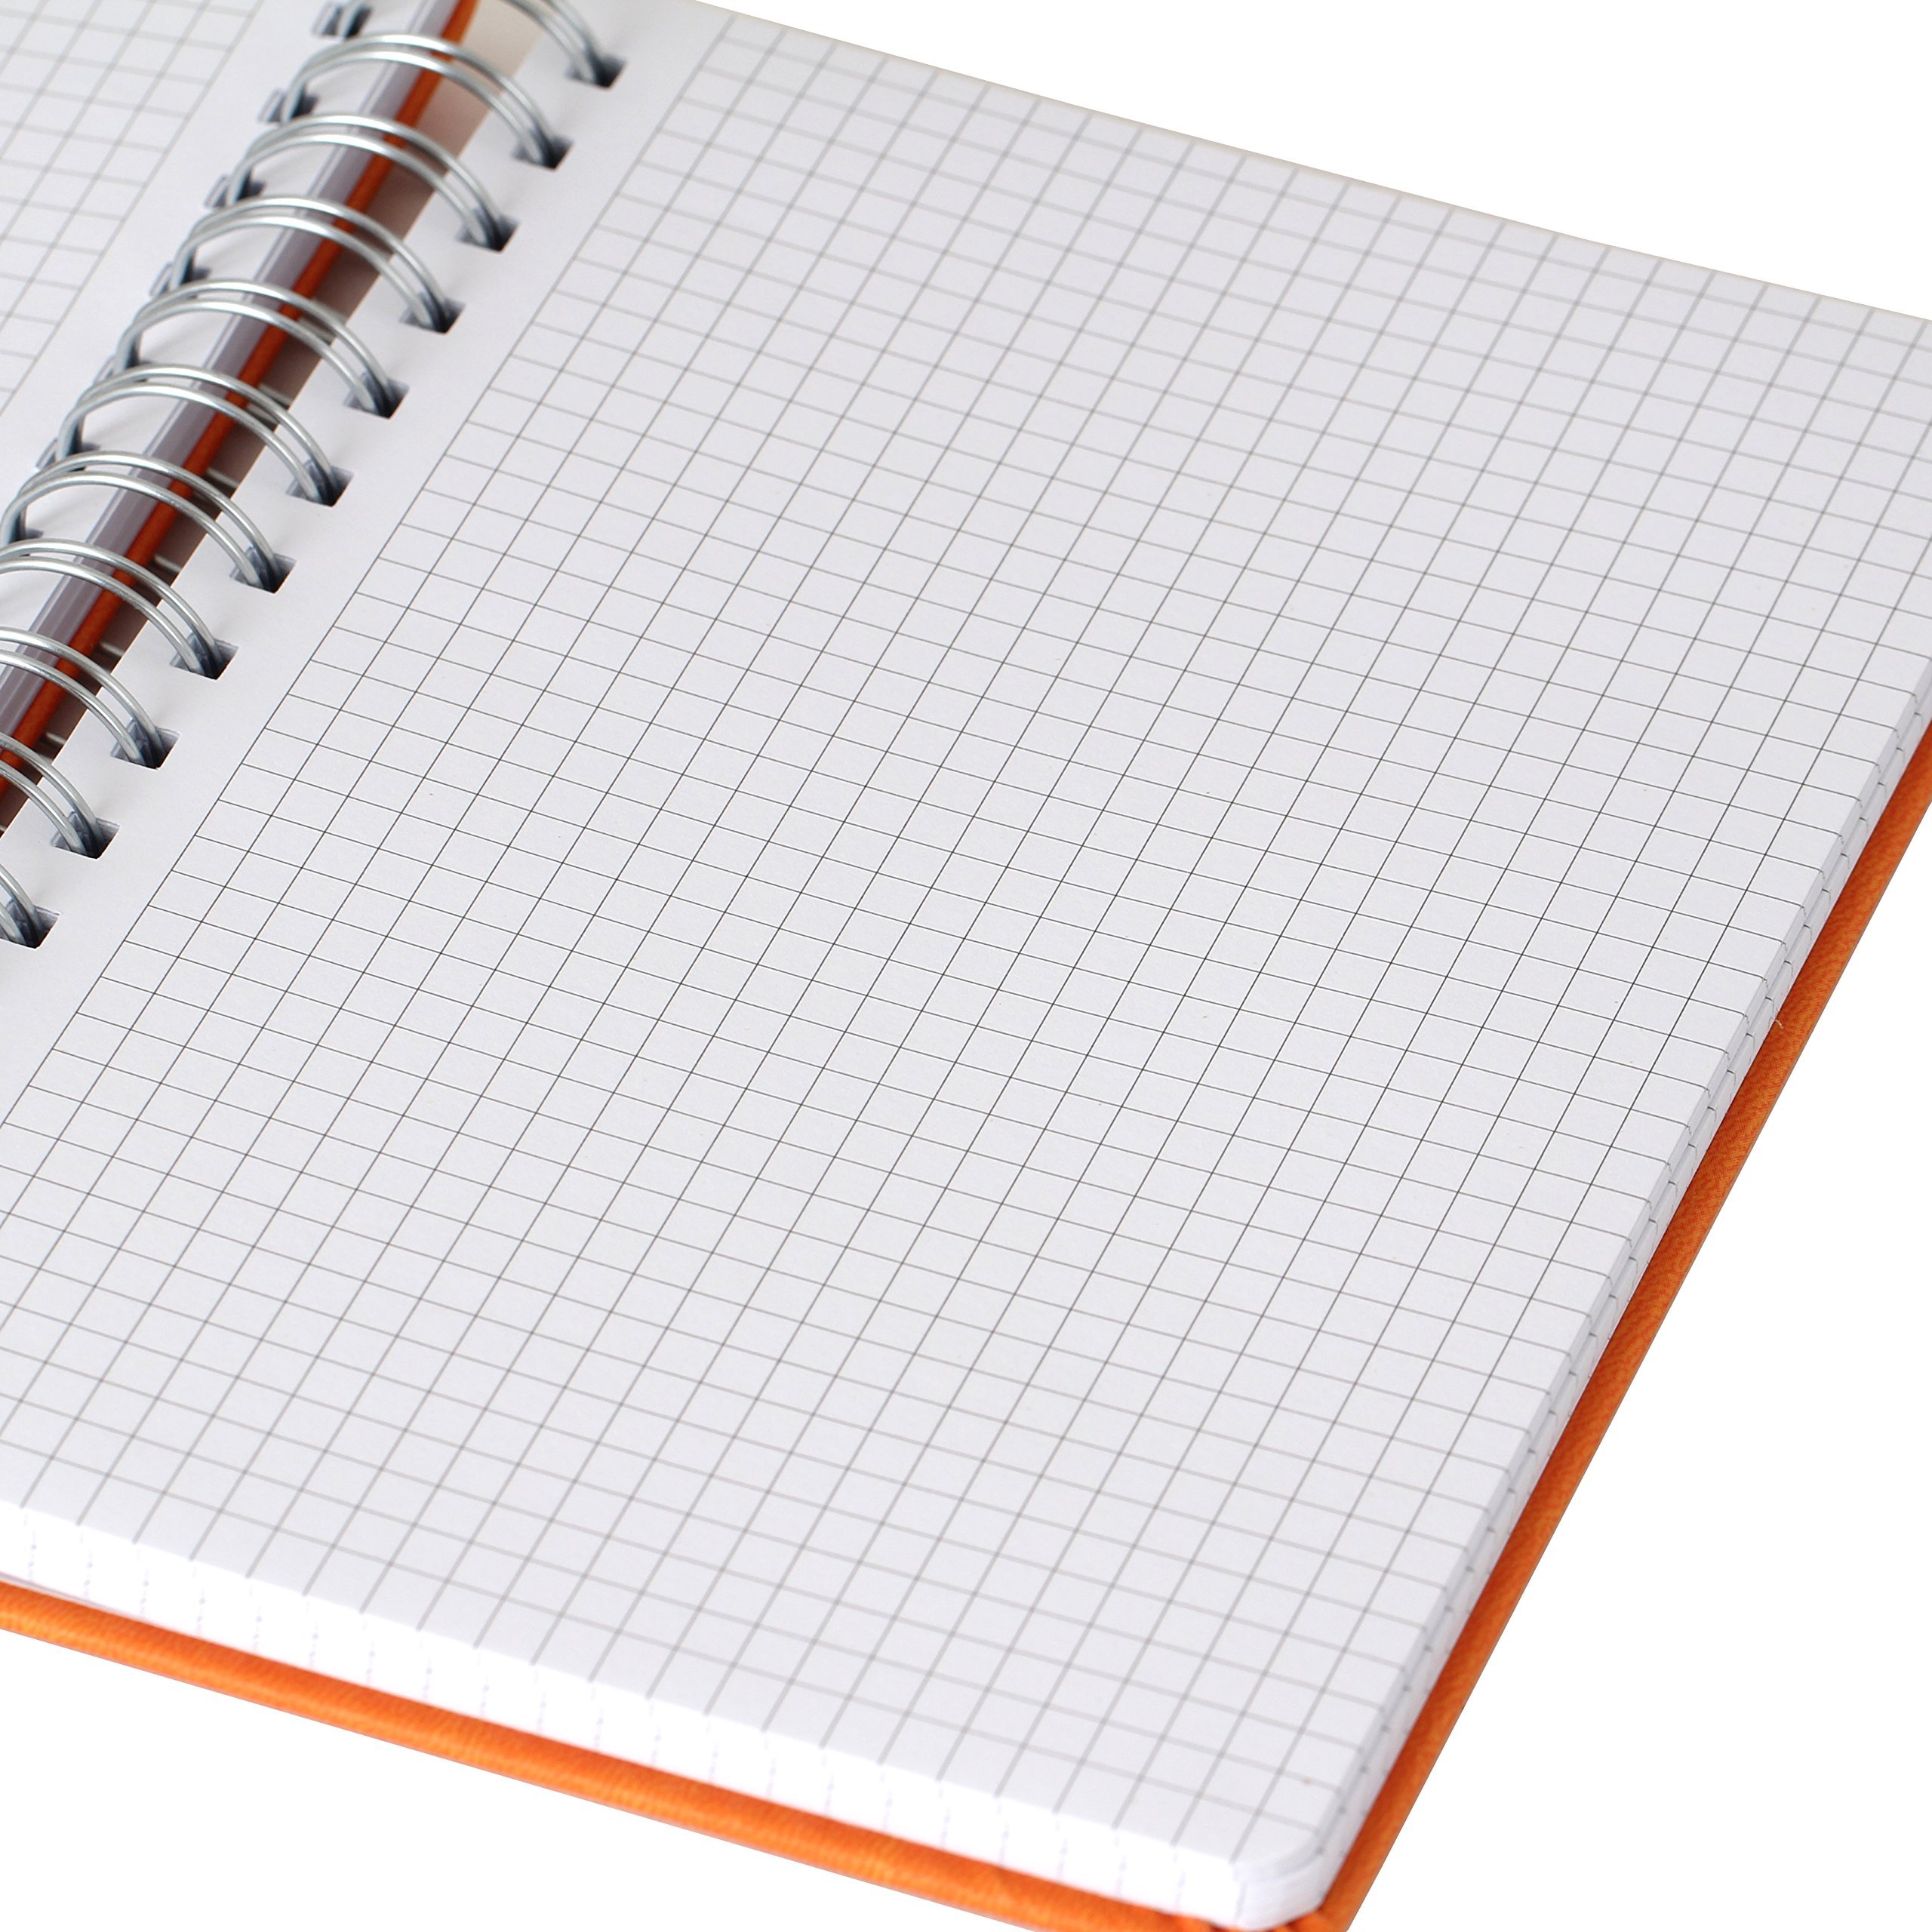 Office+Style PU Personal Graph Notebook with Double Spiral Binding, 96 Sheets, Orange (OS3-NBORG) by Office+Style (Image #1)